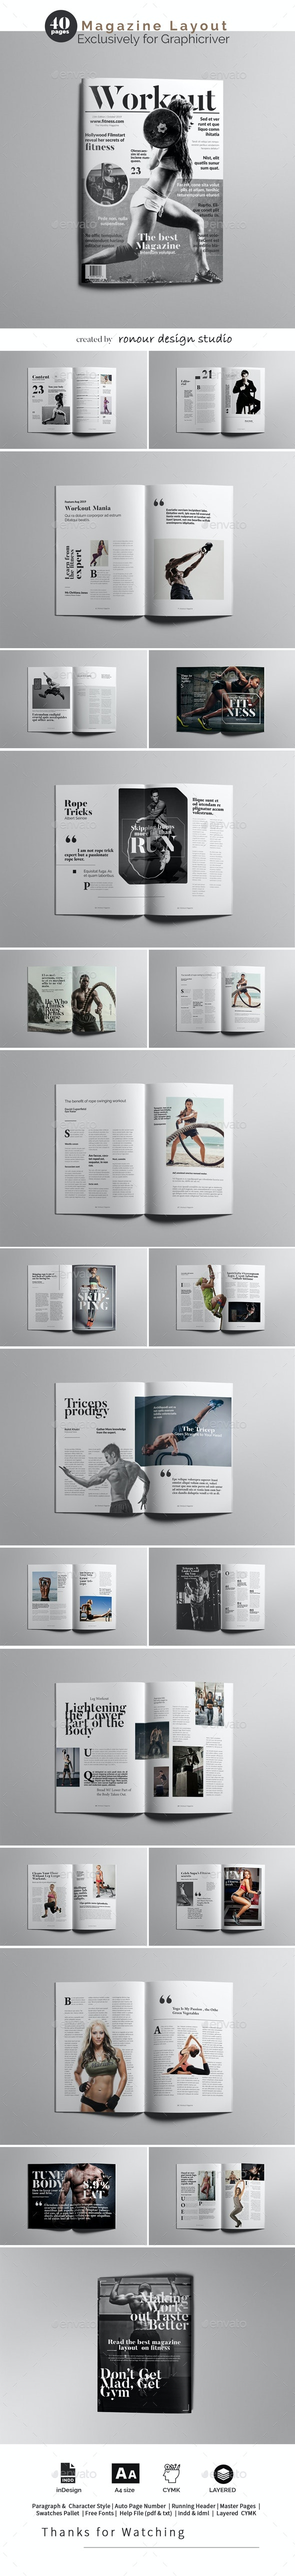 Fitness Magazine Design Layout - Magazines Print Templates